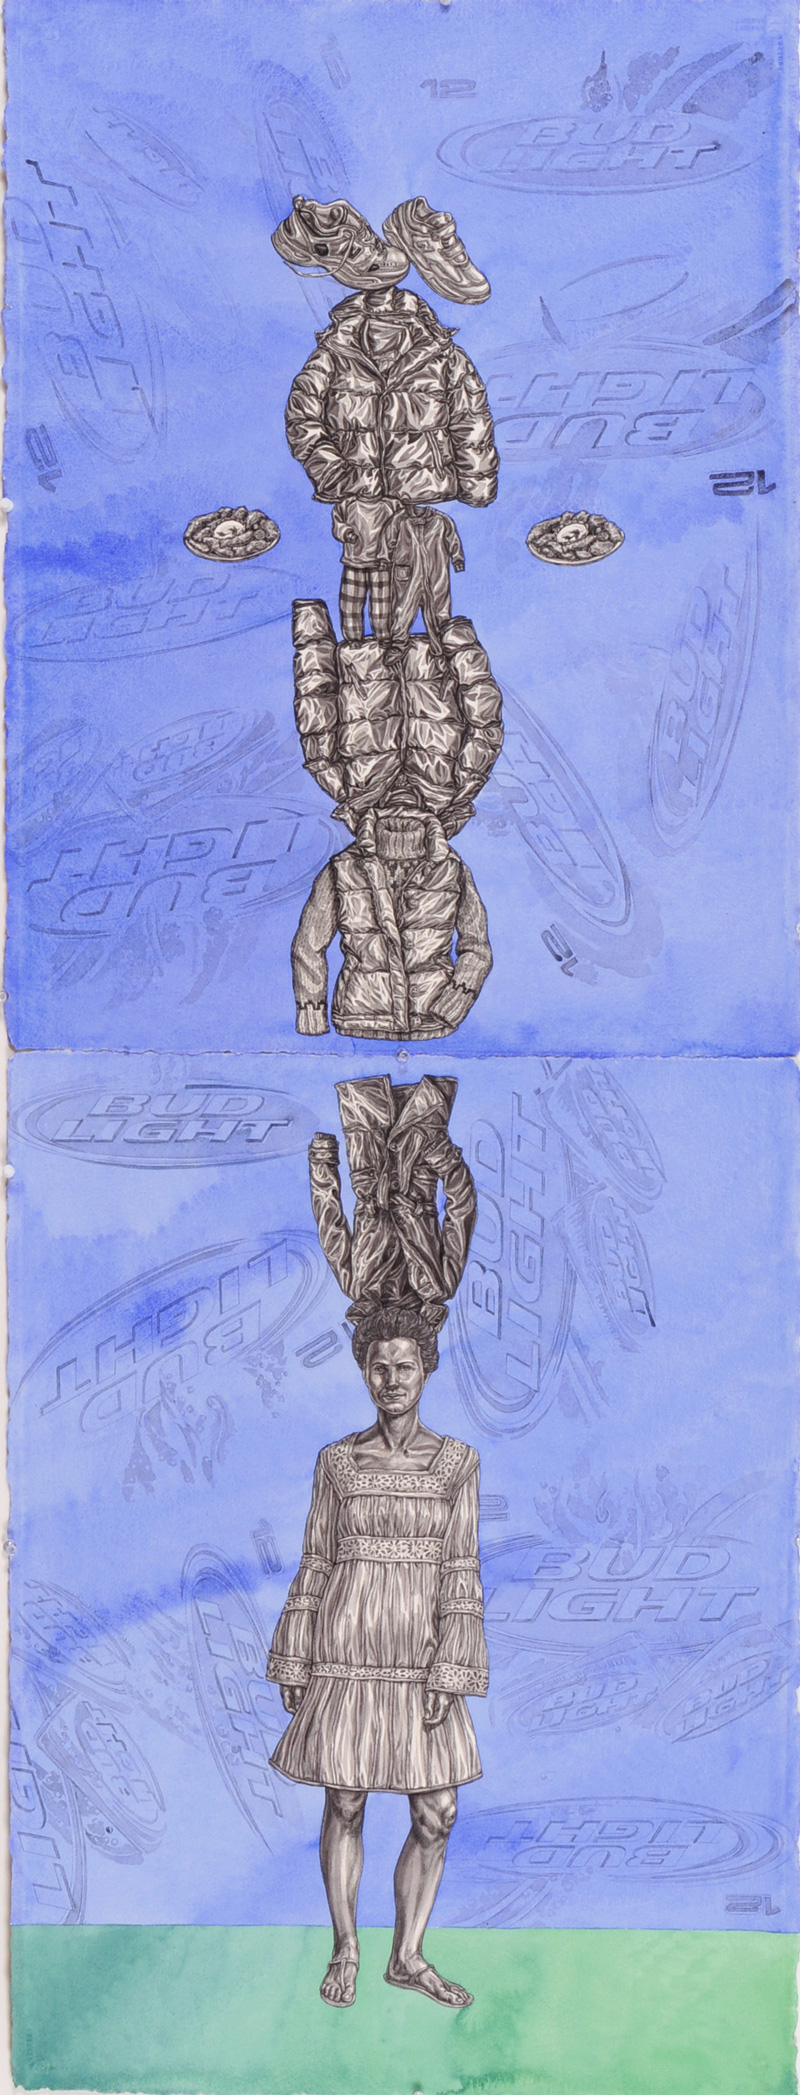 """Bud Light"" 2010, 60 x 20 in, watercolor and pencil on paper courtesy of P.P.O.W. Gallery, New York, NY"